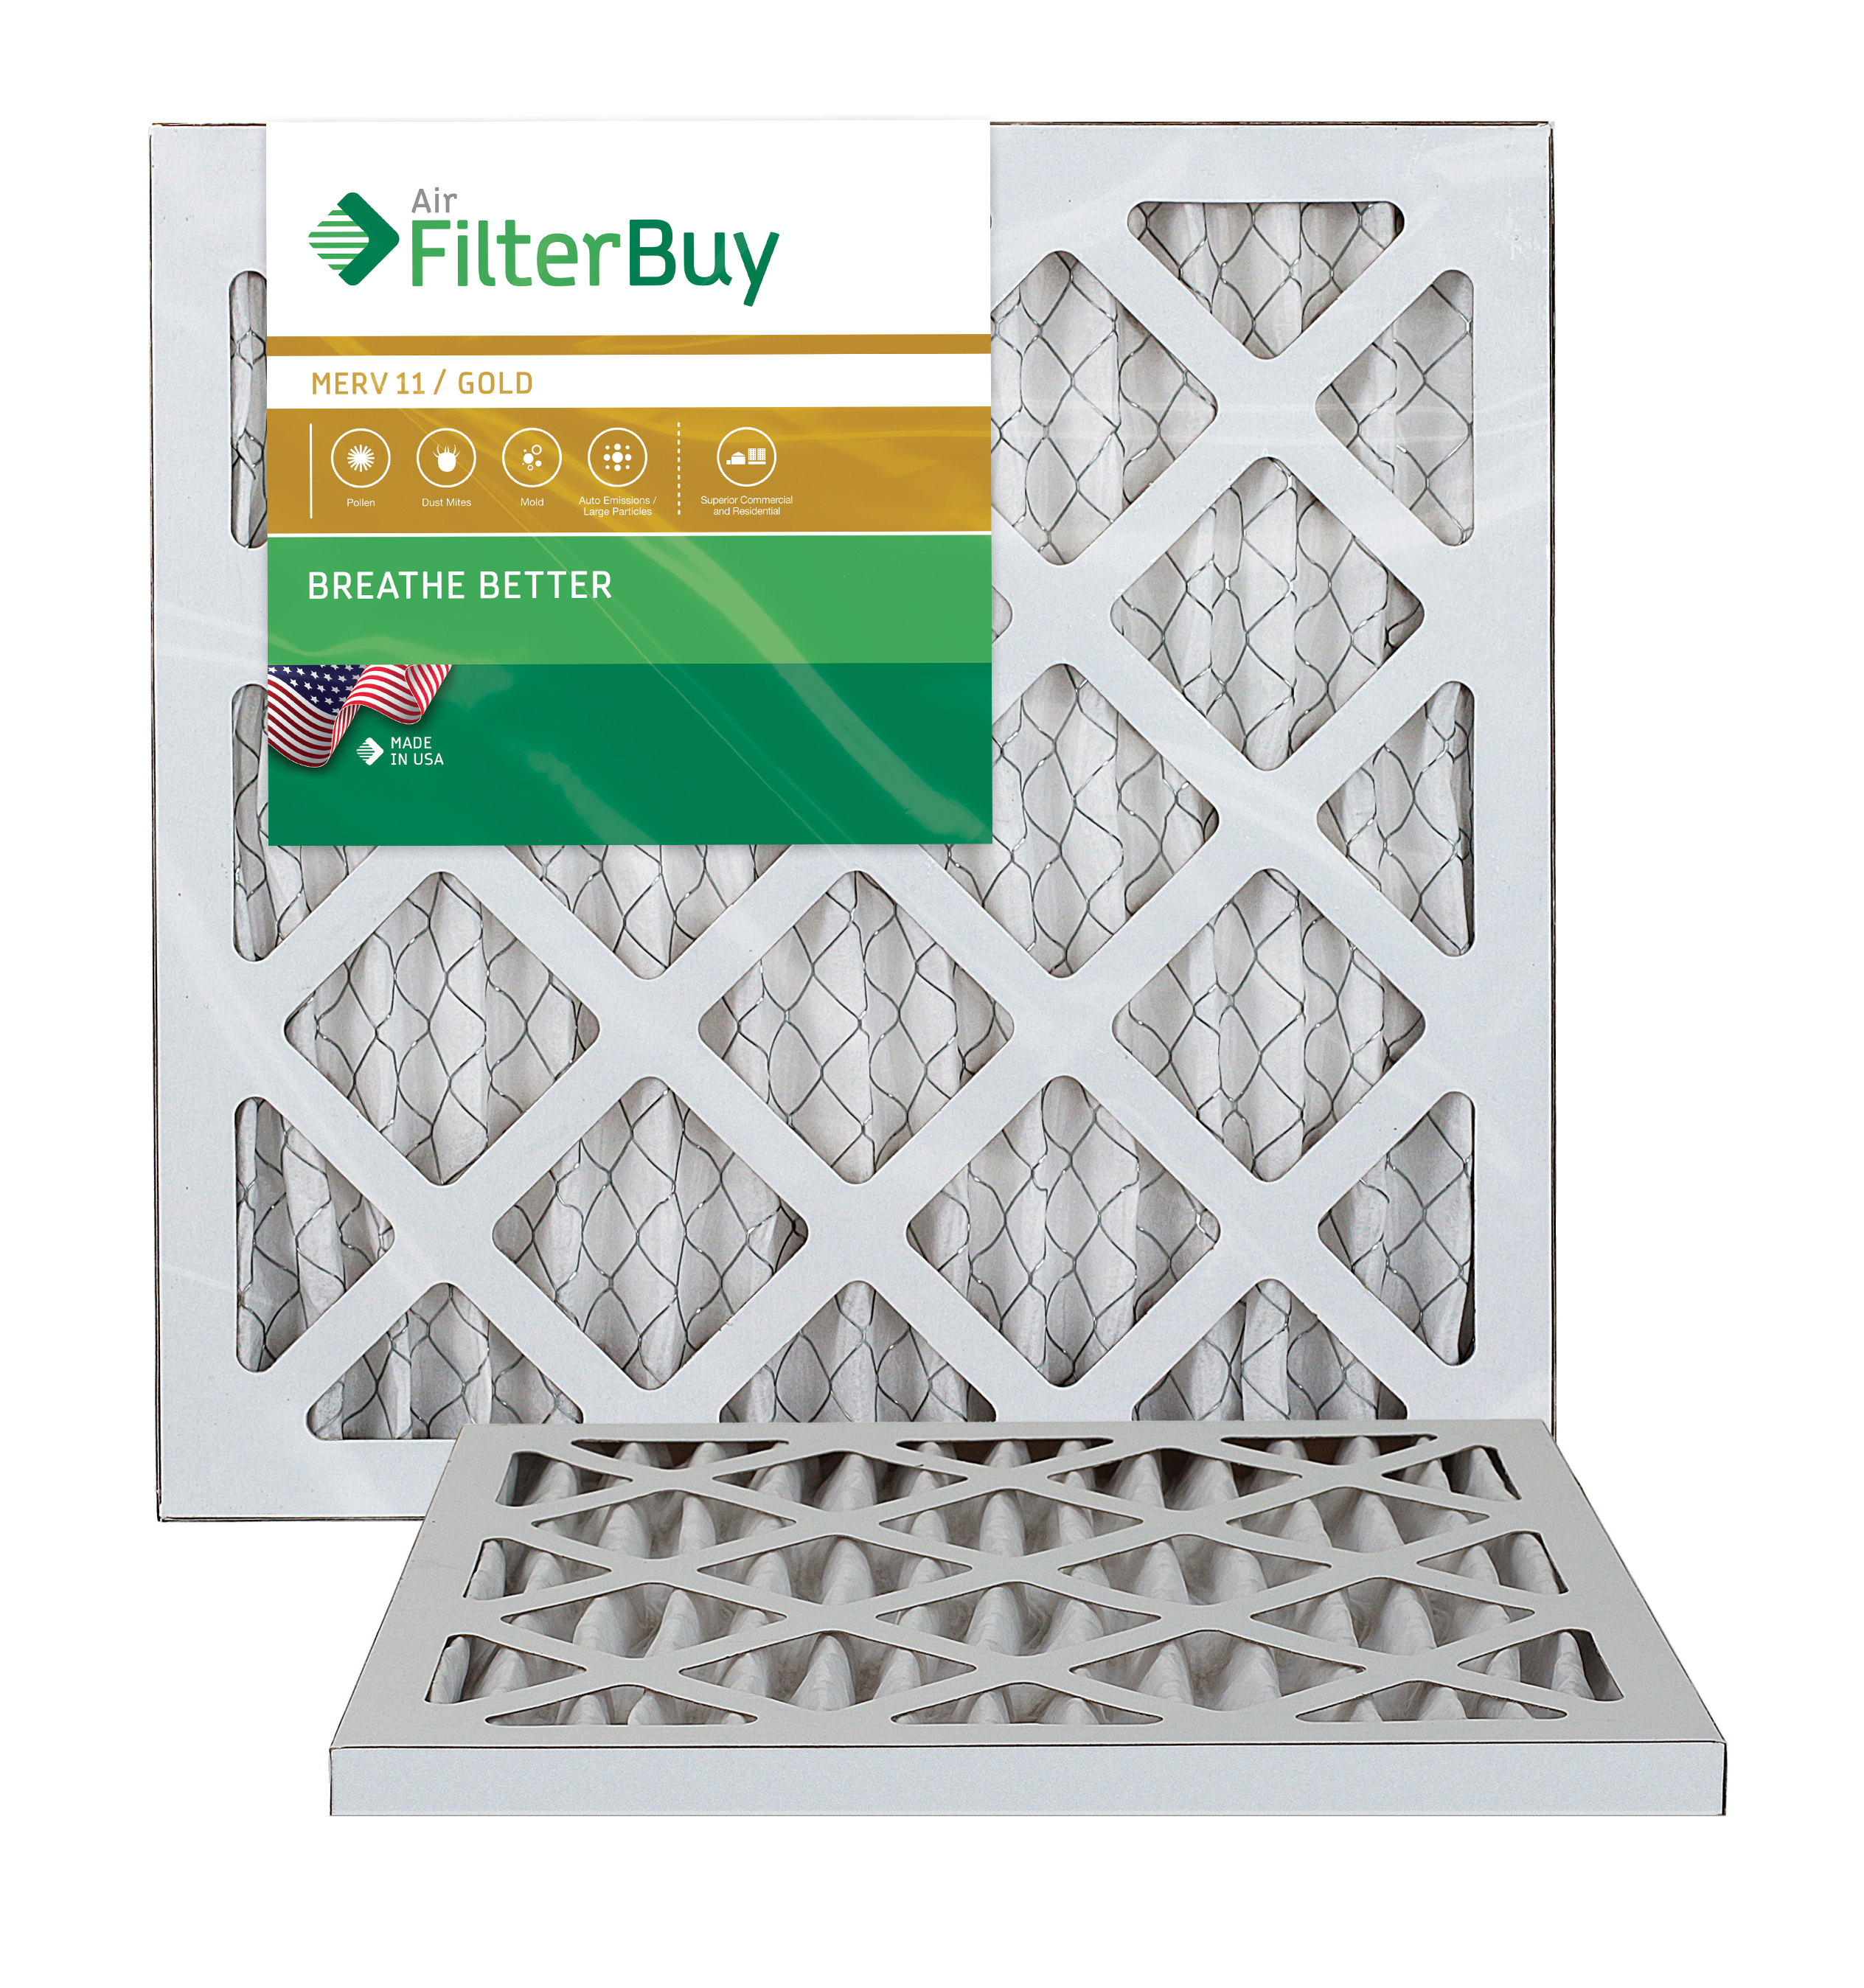 20x20x5 2 Pack 20.75x20.25x5.25 MERV 8 Aftermarket Gibson Replacement Filter